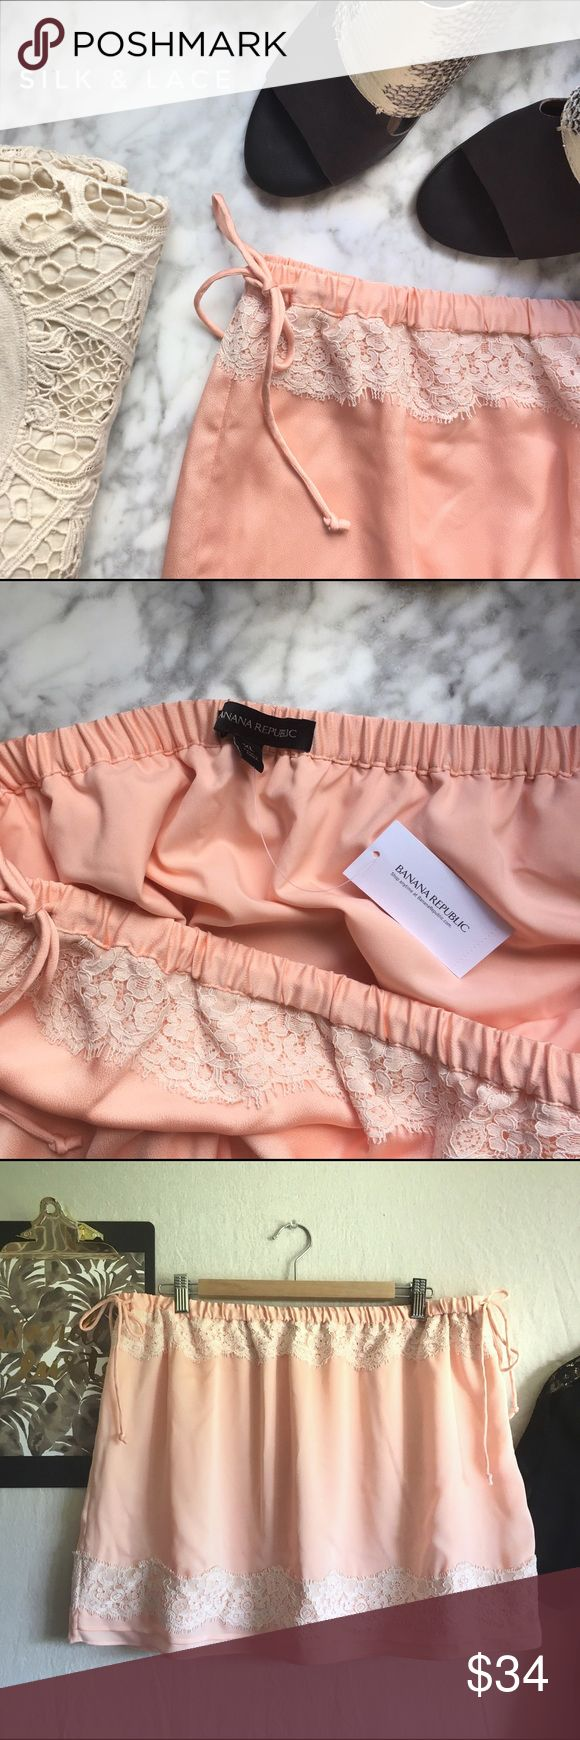 BR•Peach Hammered Silk Slip Skirt Ultra-feminine & romantic. Vintage inspired & adds a touch of 40's boudoir to your ensemble. Adjustable waist. Marked XL, Best fits sizes 10-12. Styled to be flouncy & sit low on the hips. Banana Republic Skirts Mini